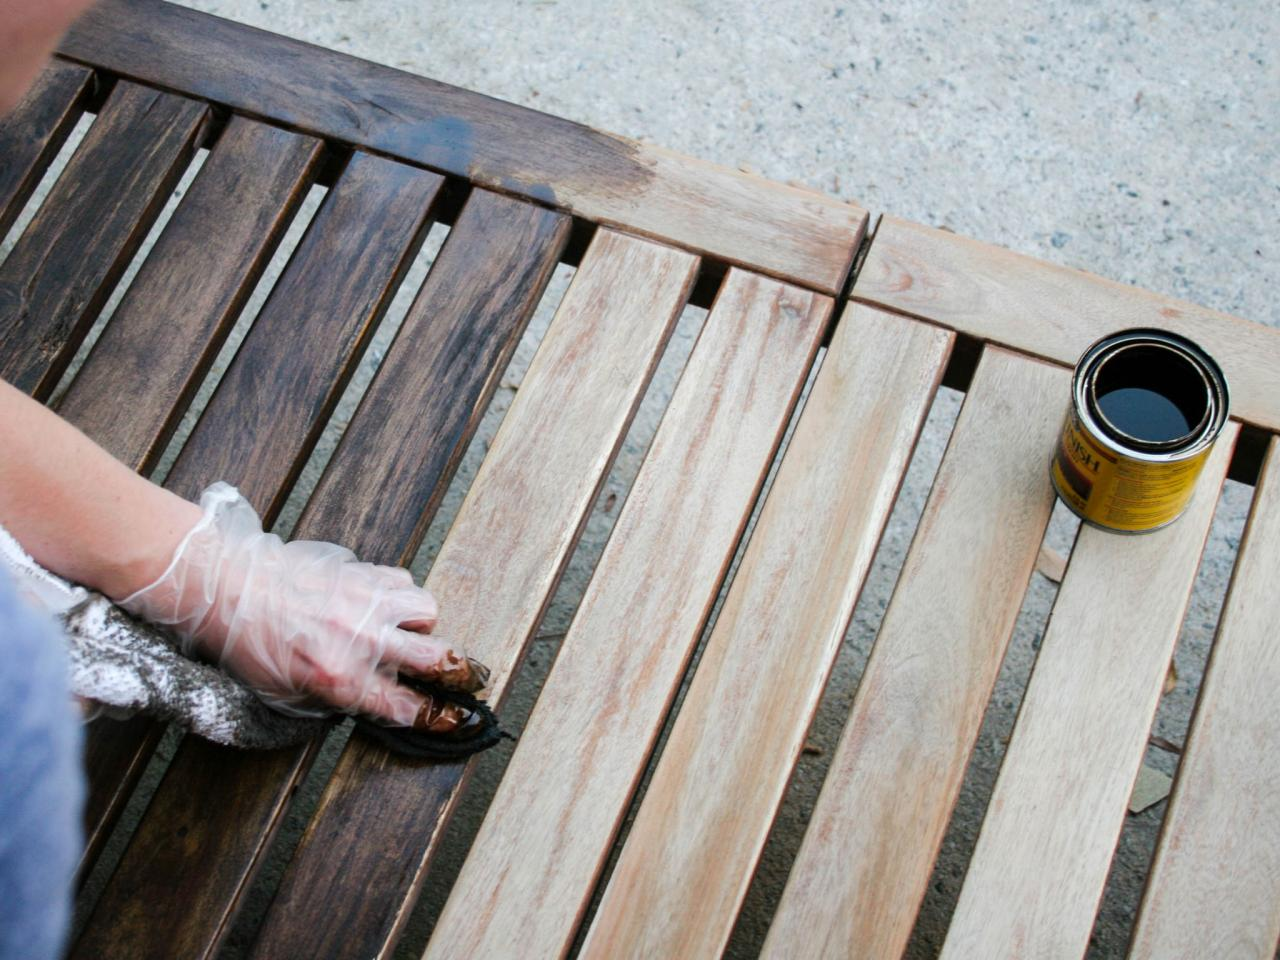 Stain It   How To Refinish Outdoor Wood Furniture HGTV   Outdoor Wood  Furniture Stain Outdoor. How To Stain Outdoor Wood Furniture   Outdoor Goods